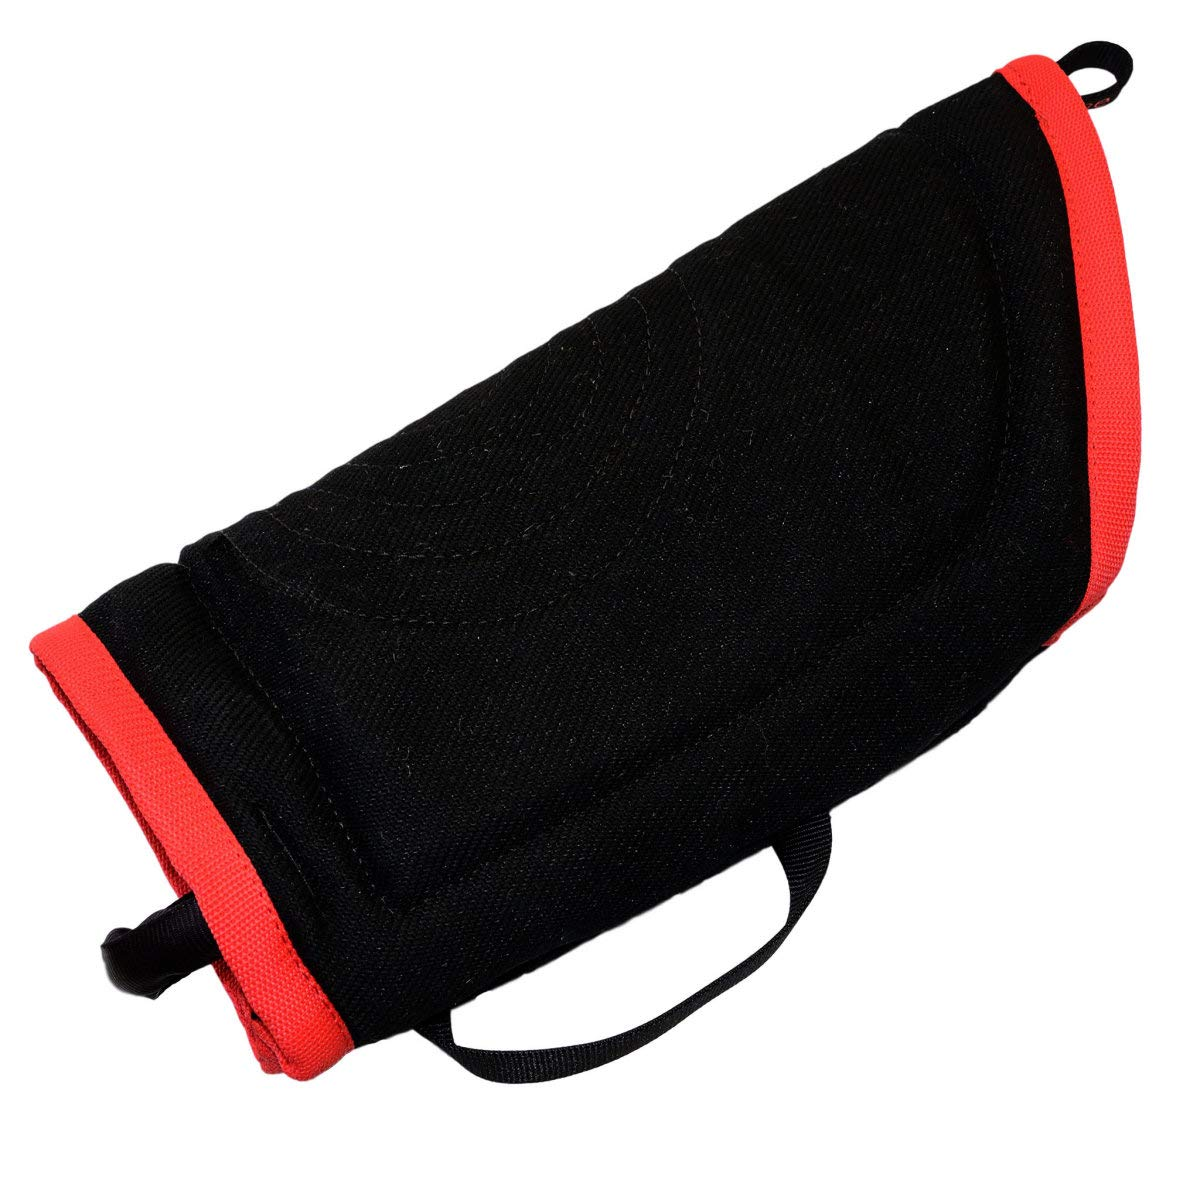 RedLine K9 Puppy Bite Suit Sleeve by REDLINE K-9 (Image #1)